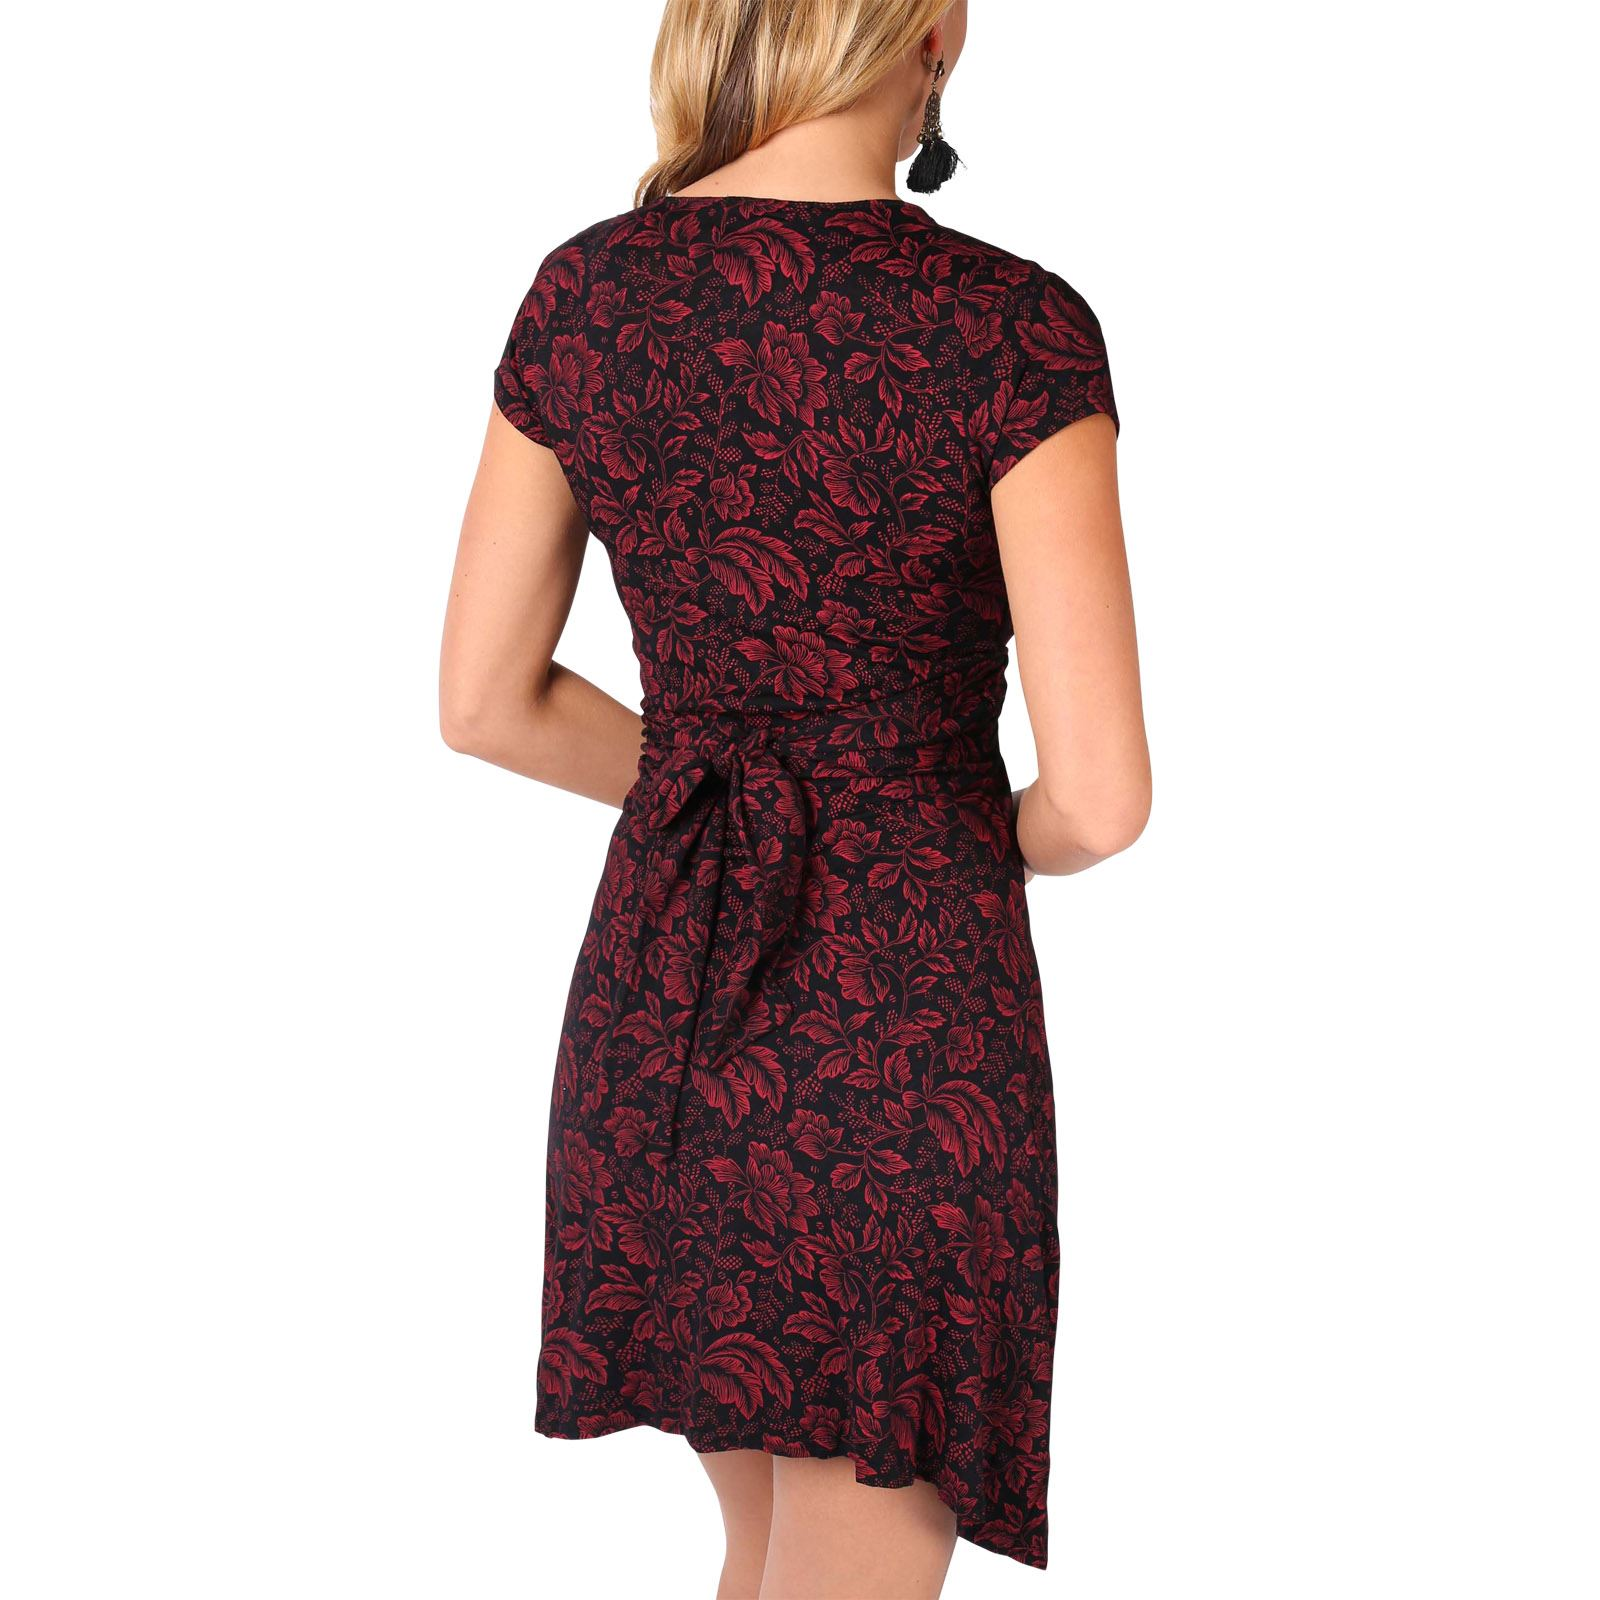 Womens-Ladies-V-Neck-Mini-Midi-Dress-Floral-Print-Knot-Short-Skirt-Party-Casual thumbnail 27